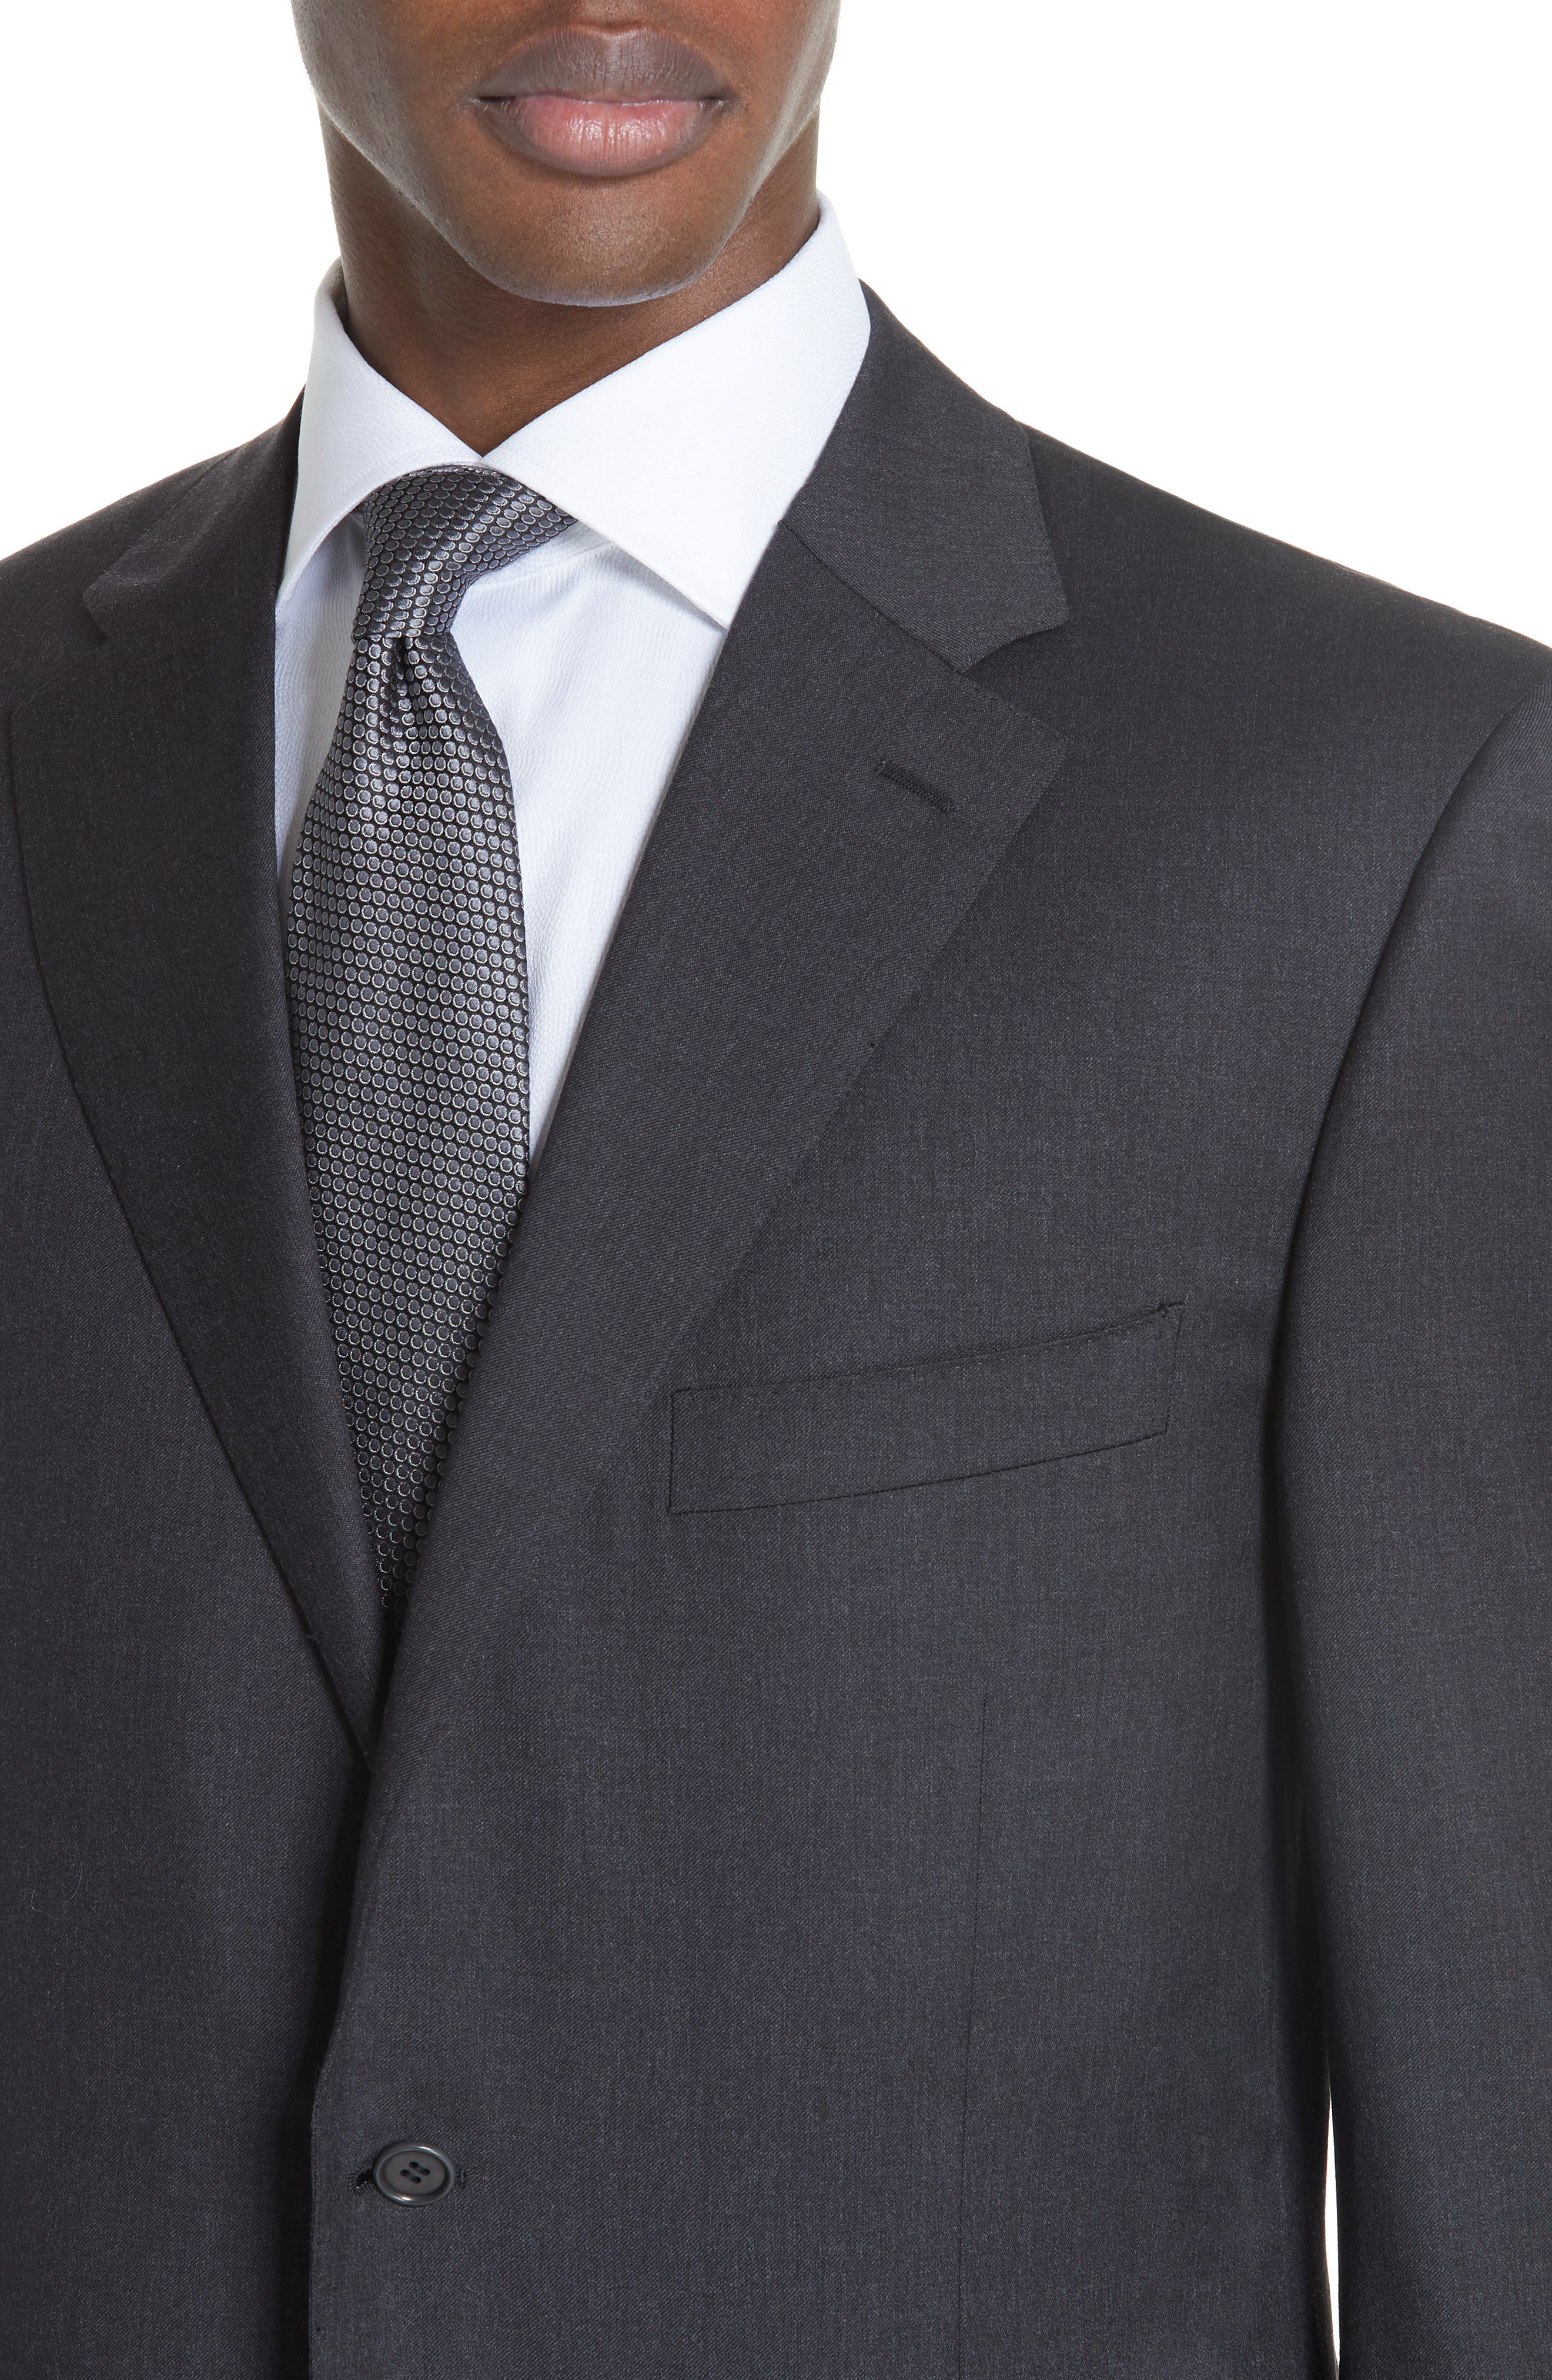 Classic Fit Wool Suit,                             Alternate thumbnail 4, color,                             CHARCOAL